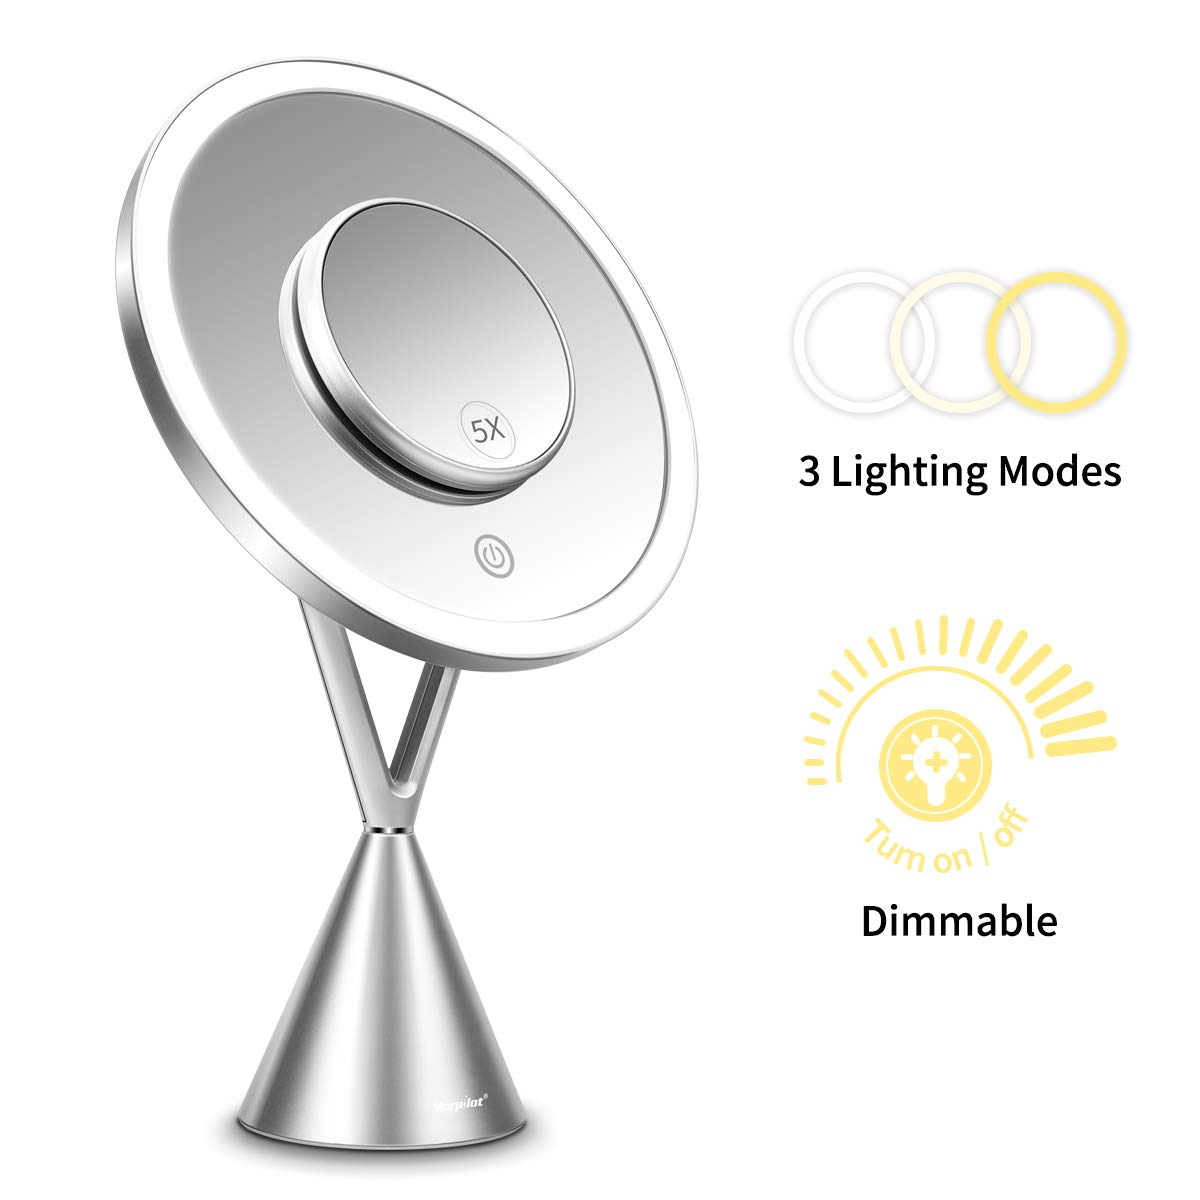 Lighted Makeup Mirror with 5X Magnification,Vanity Mirror with Lights, 3 Color Lighting Modes 8.3 Rechargeable Mirror with Dimmable Touch Screen